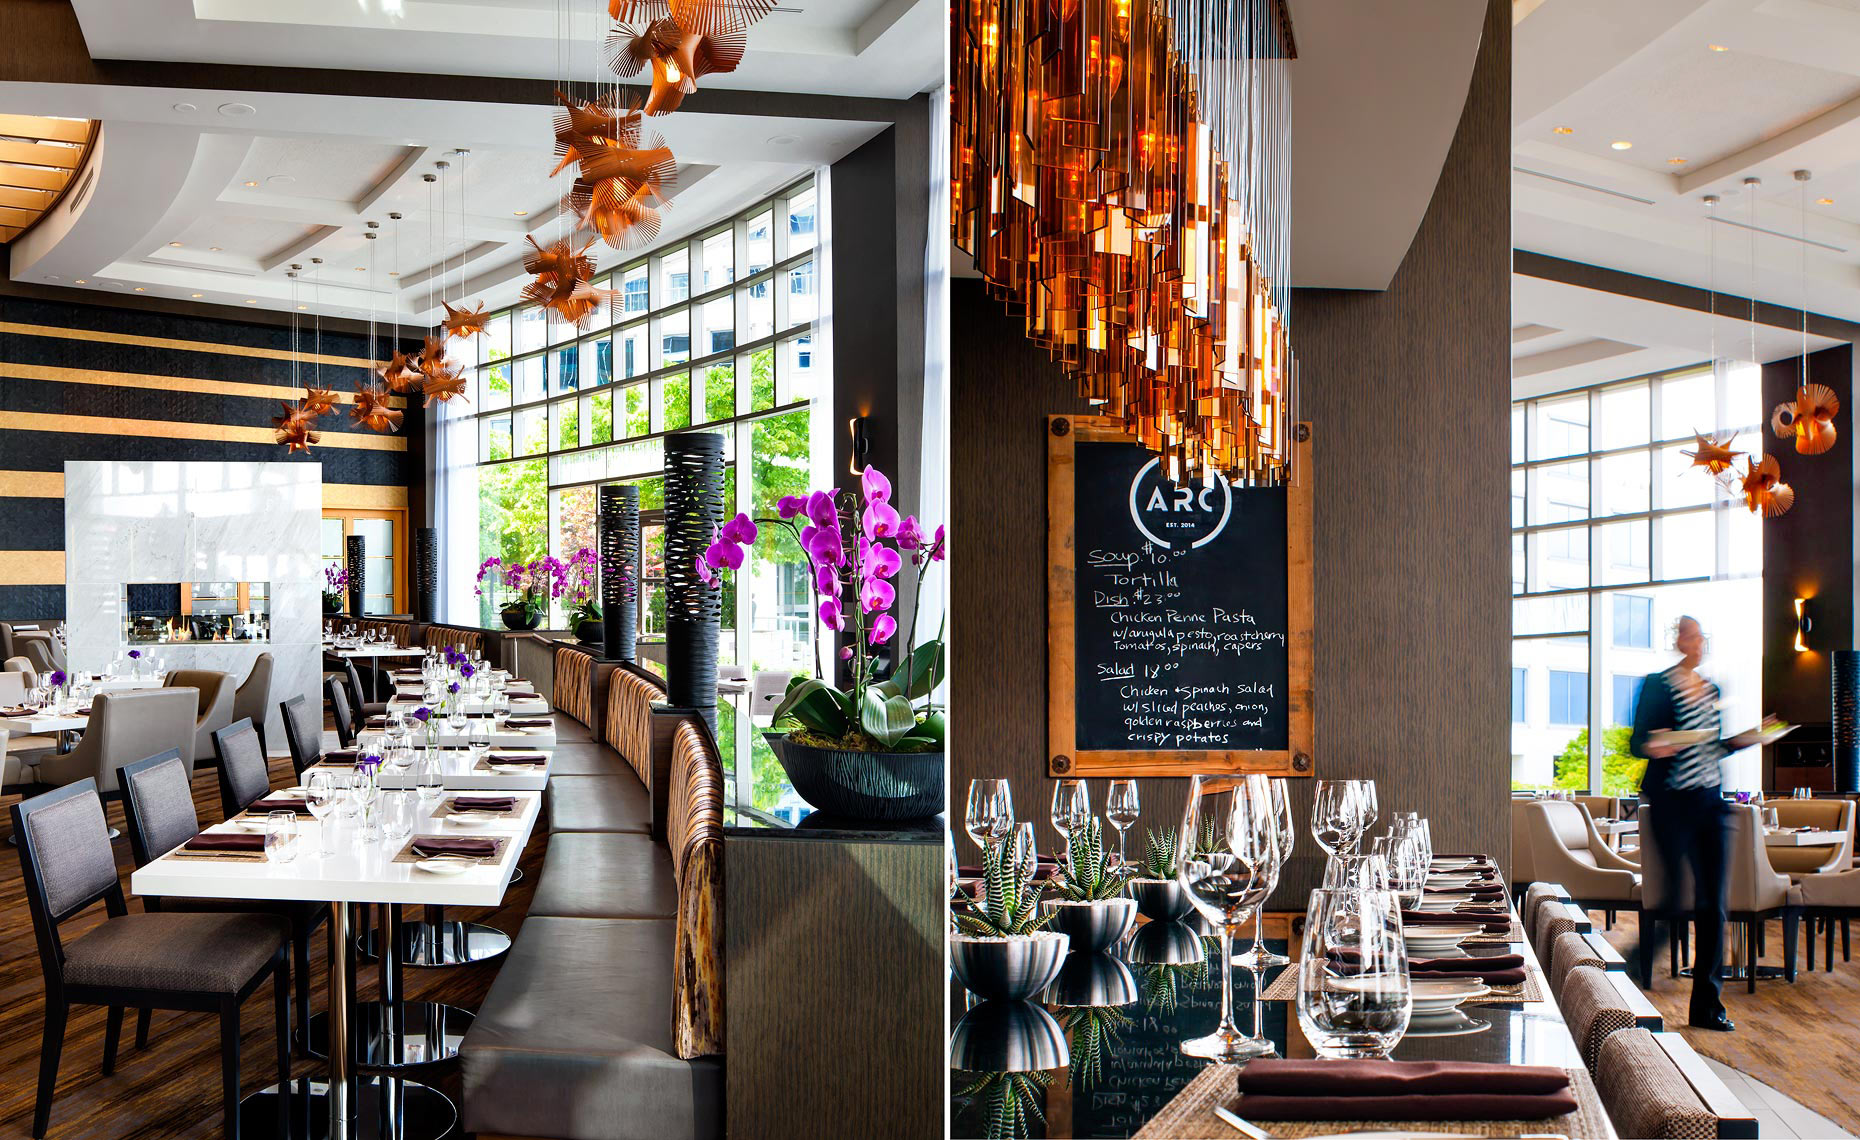 Arc Restaurant at the Fairmont Waterfront Hotel -  Vancouver, Canada - Restaurant Photography